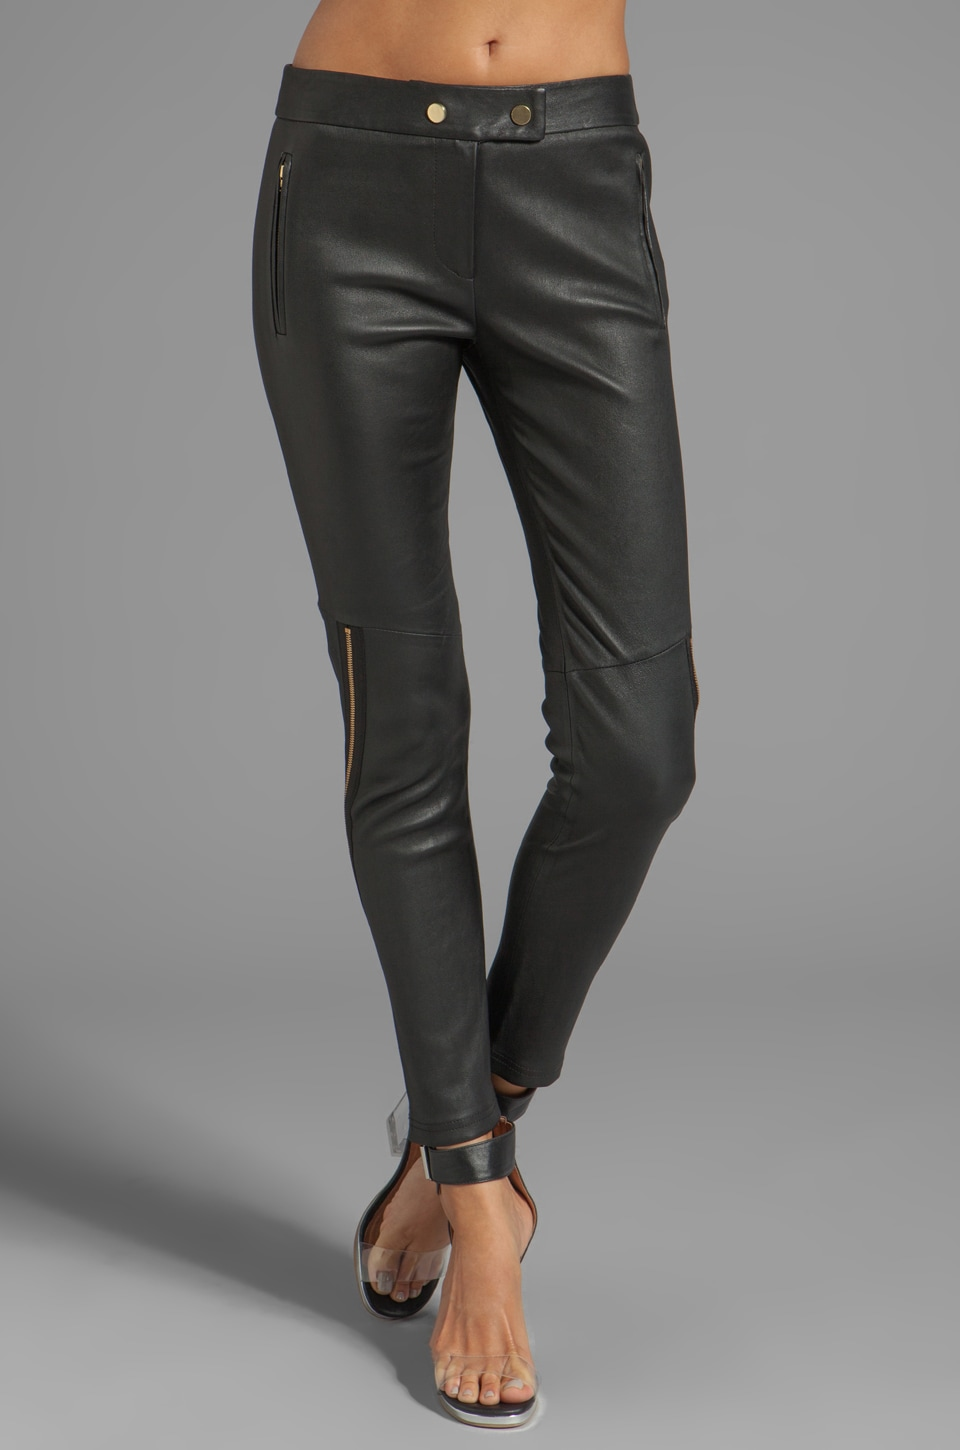 camilla and marc Modernist Leather Pant in Black